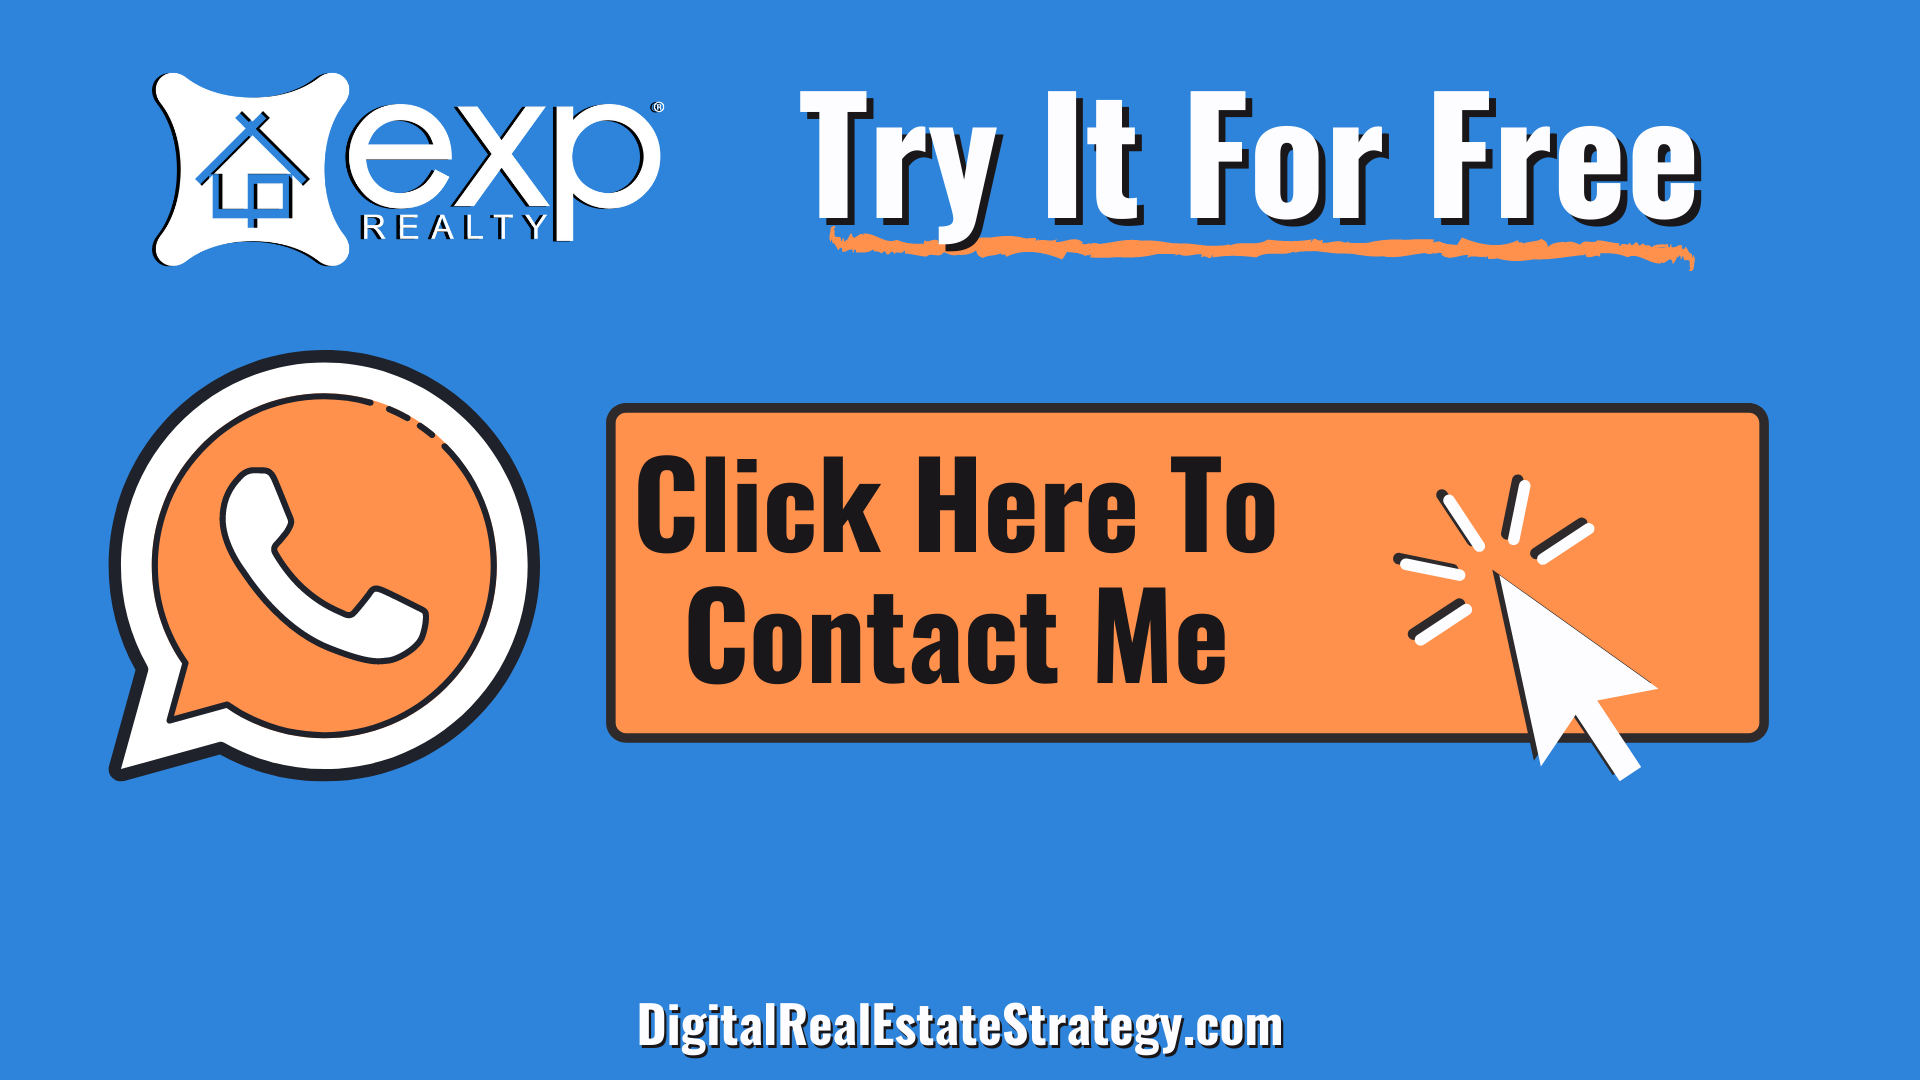 eXp Realty Review Contact Jerome Lewis - eXp Realty Philadelphia, PA - Digital Real Estate Strategy